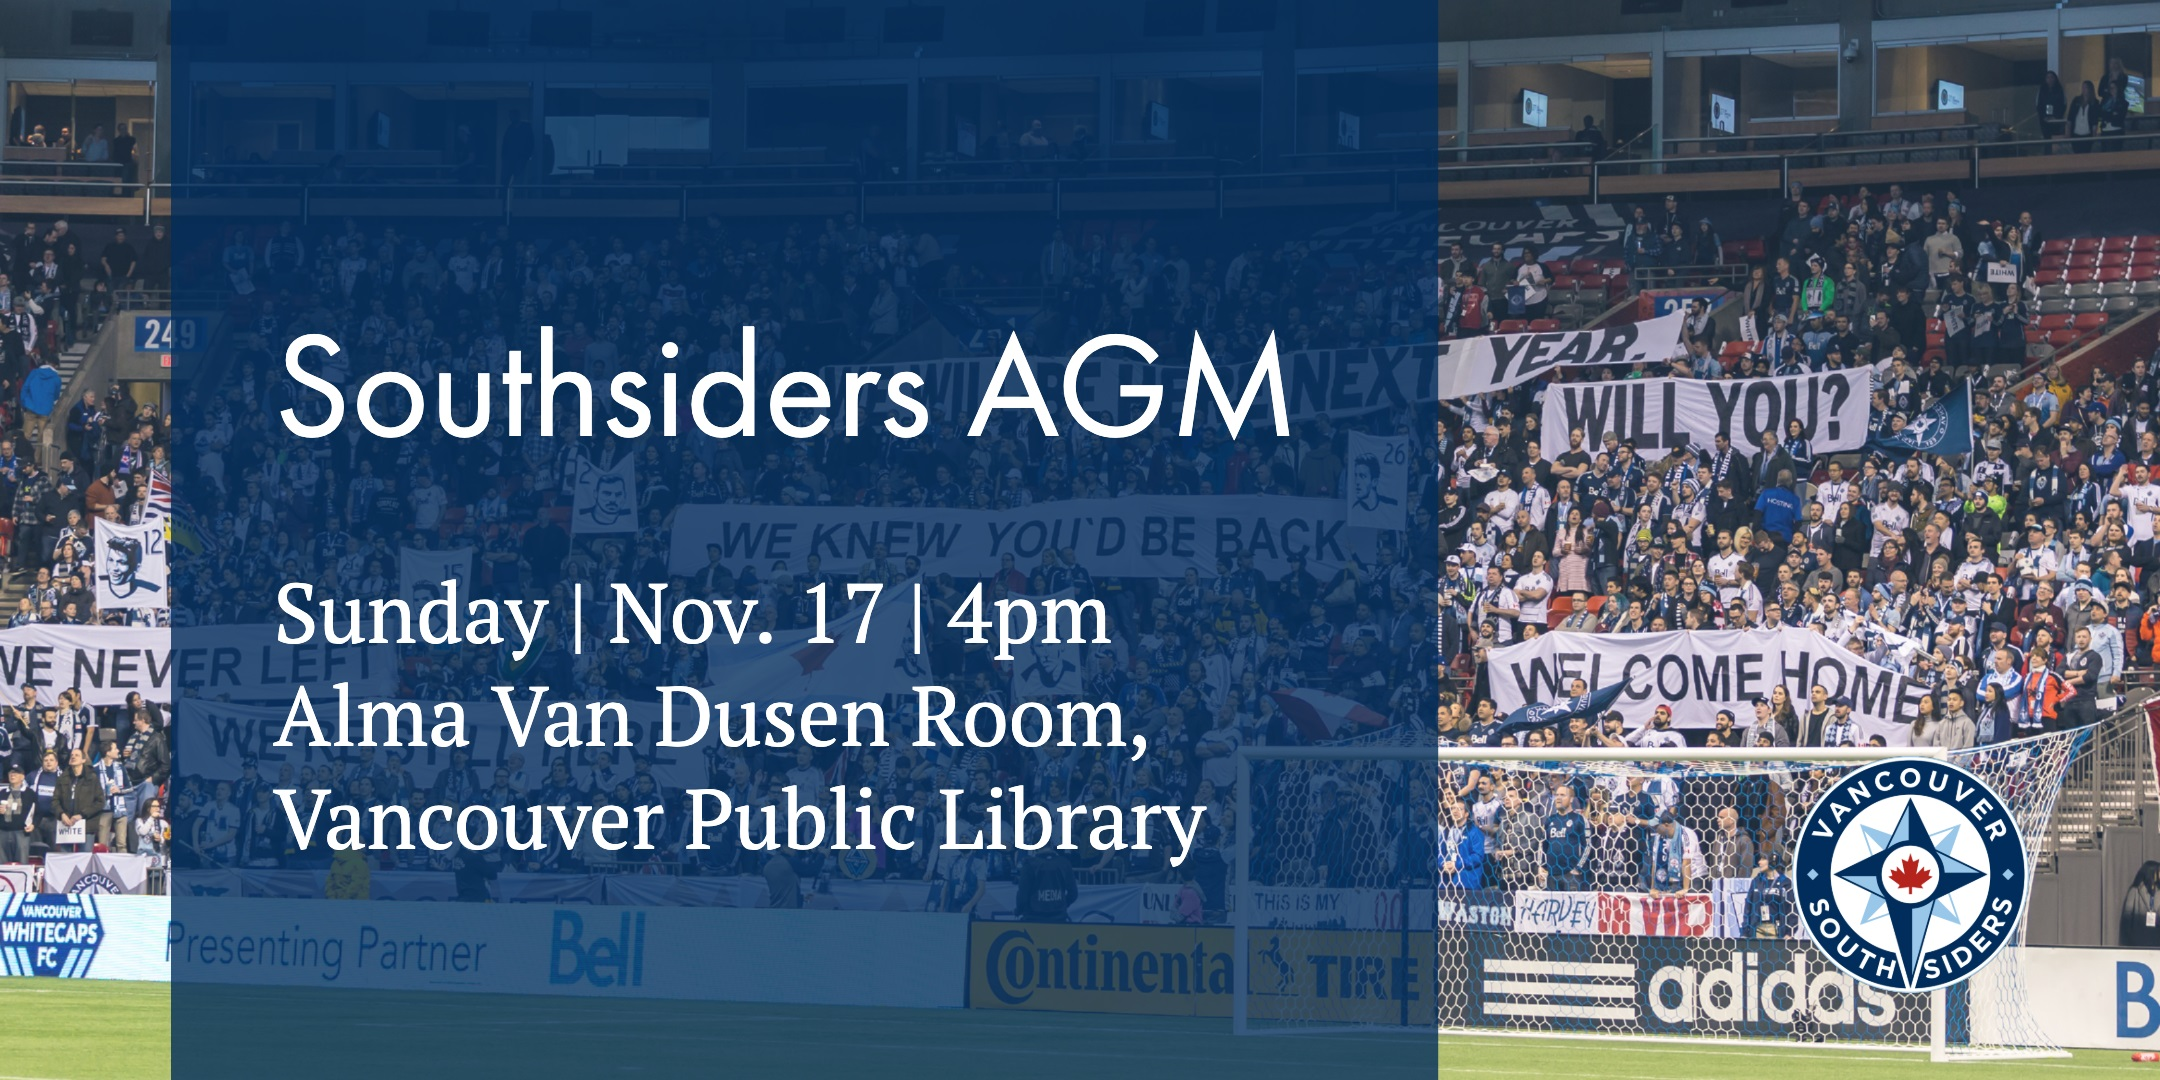 Southsiders AGM - Sunday, November 17th, 4pm @ Alma VanDusen Room